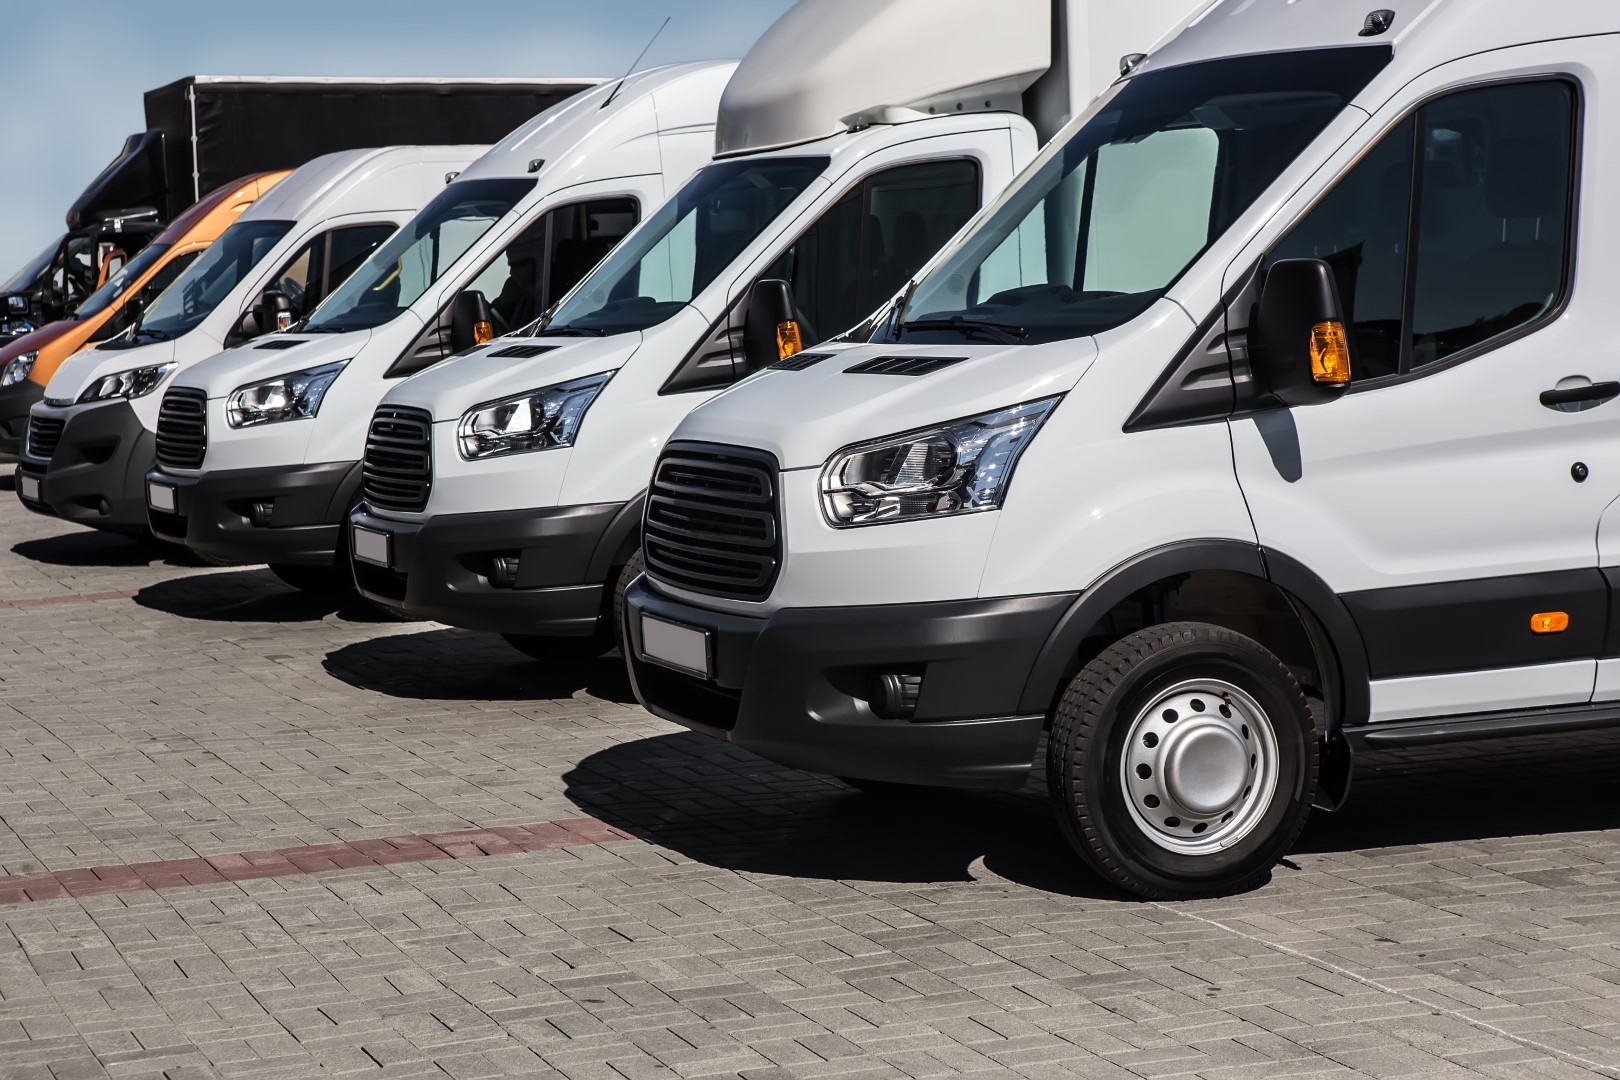 Number,of,new,white,minibuses,and,vans,outside - Barnsley Commercial Sales Ltd